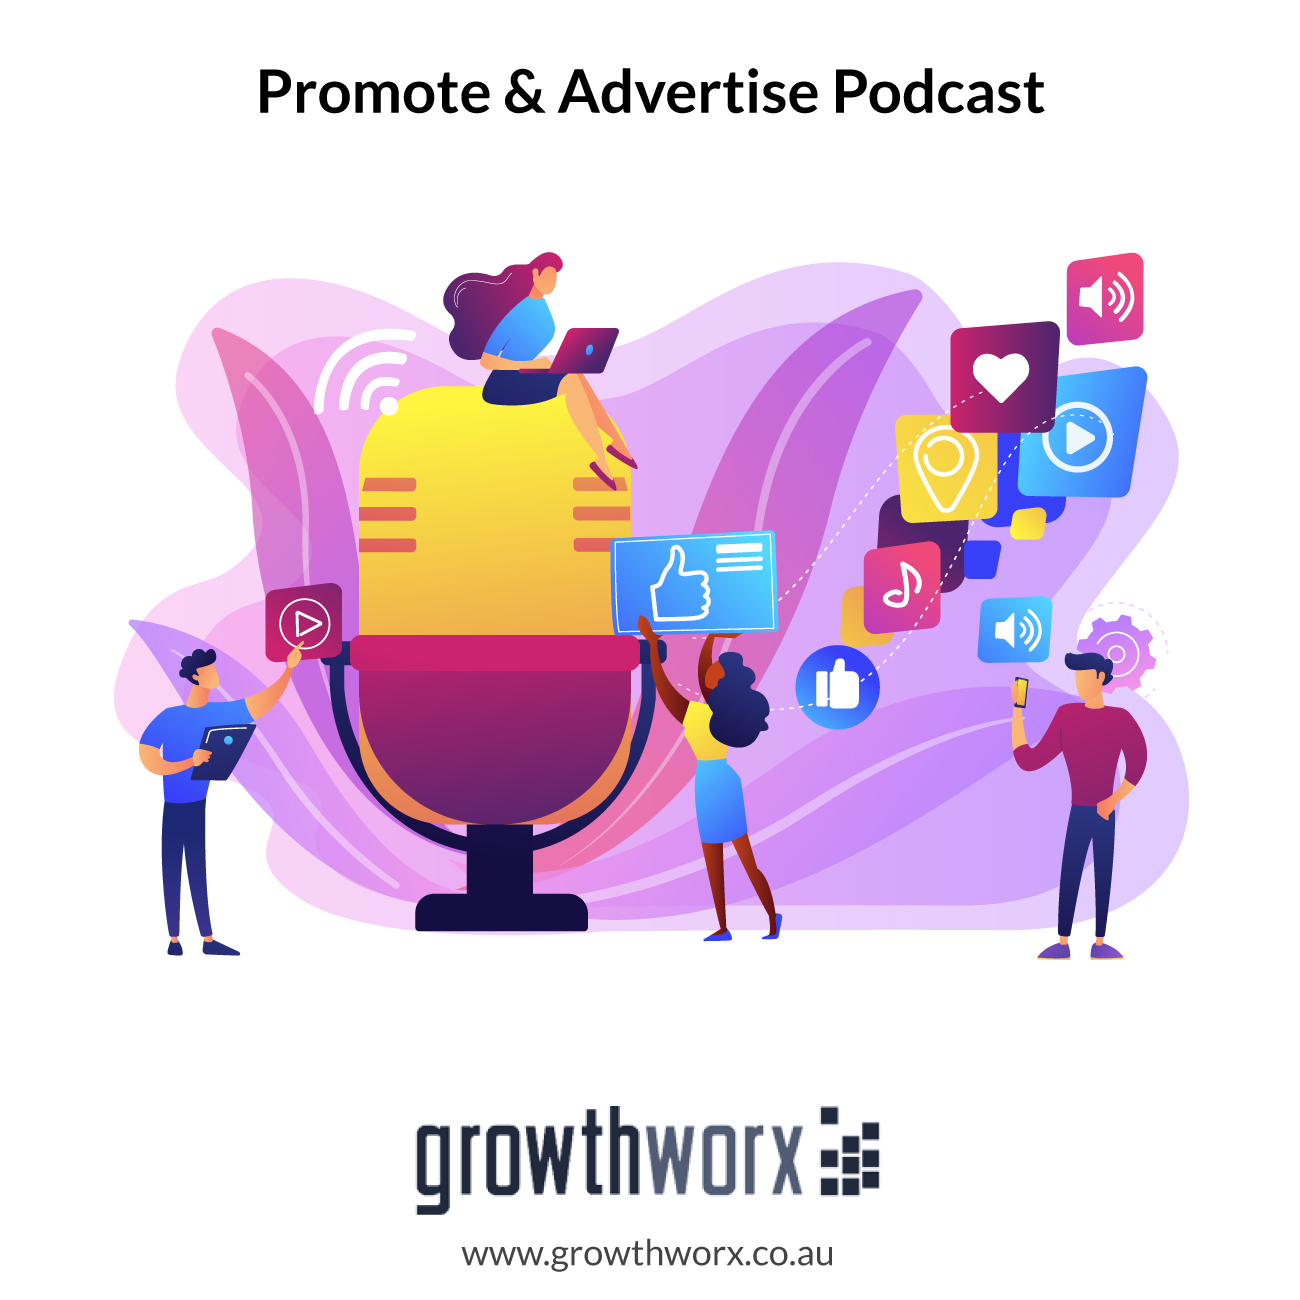 I will promote and advertise your podcast increase subscribers and marketing 1